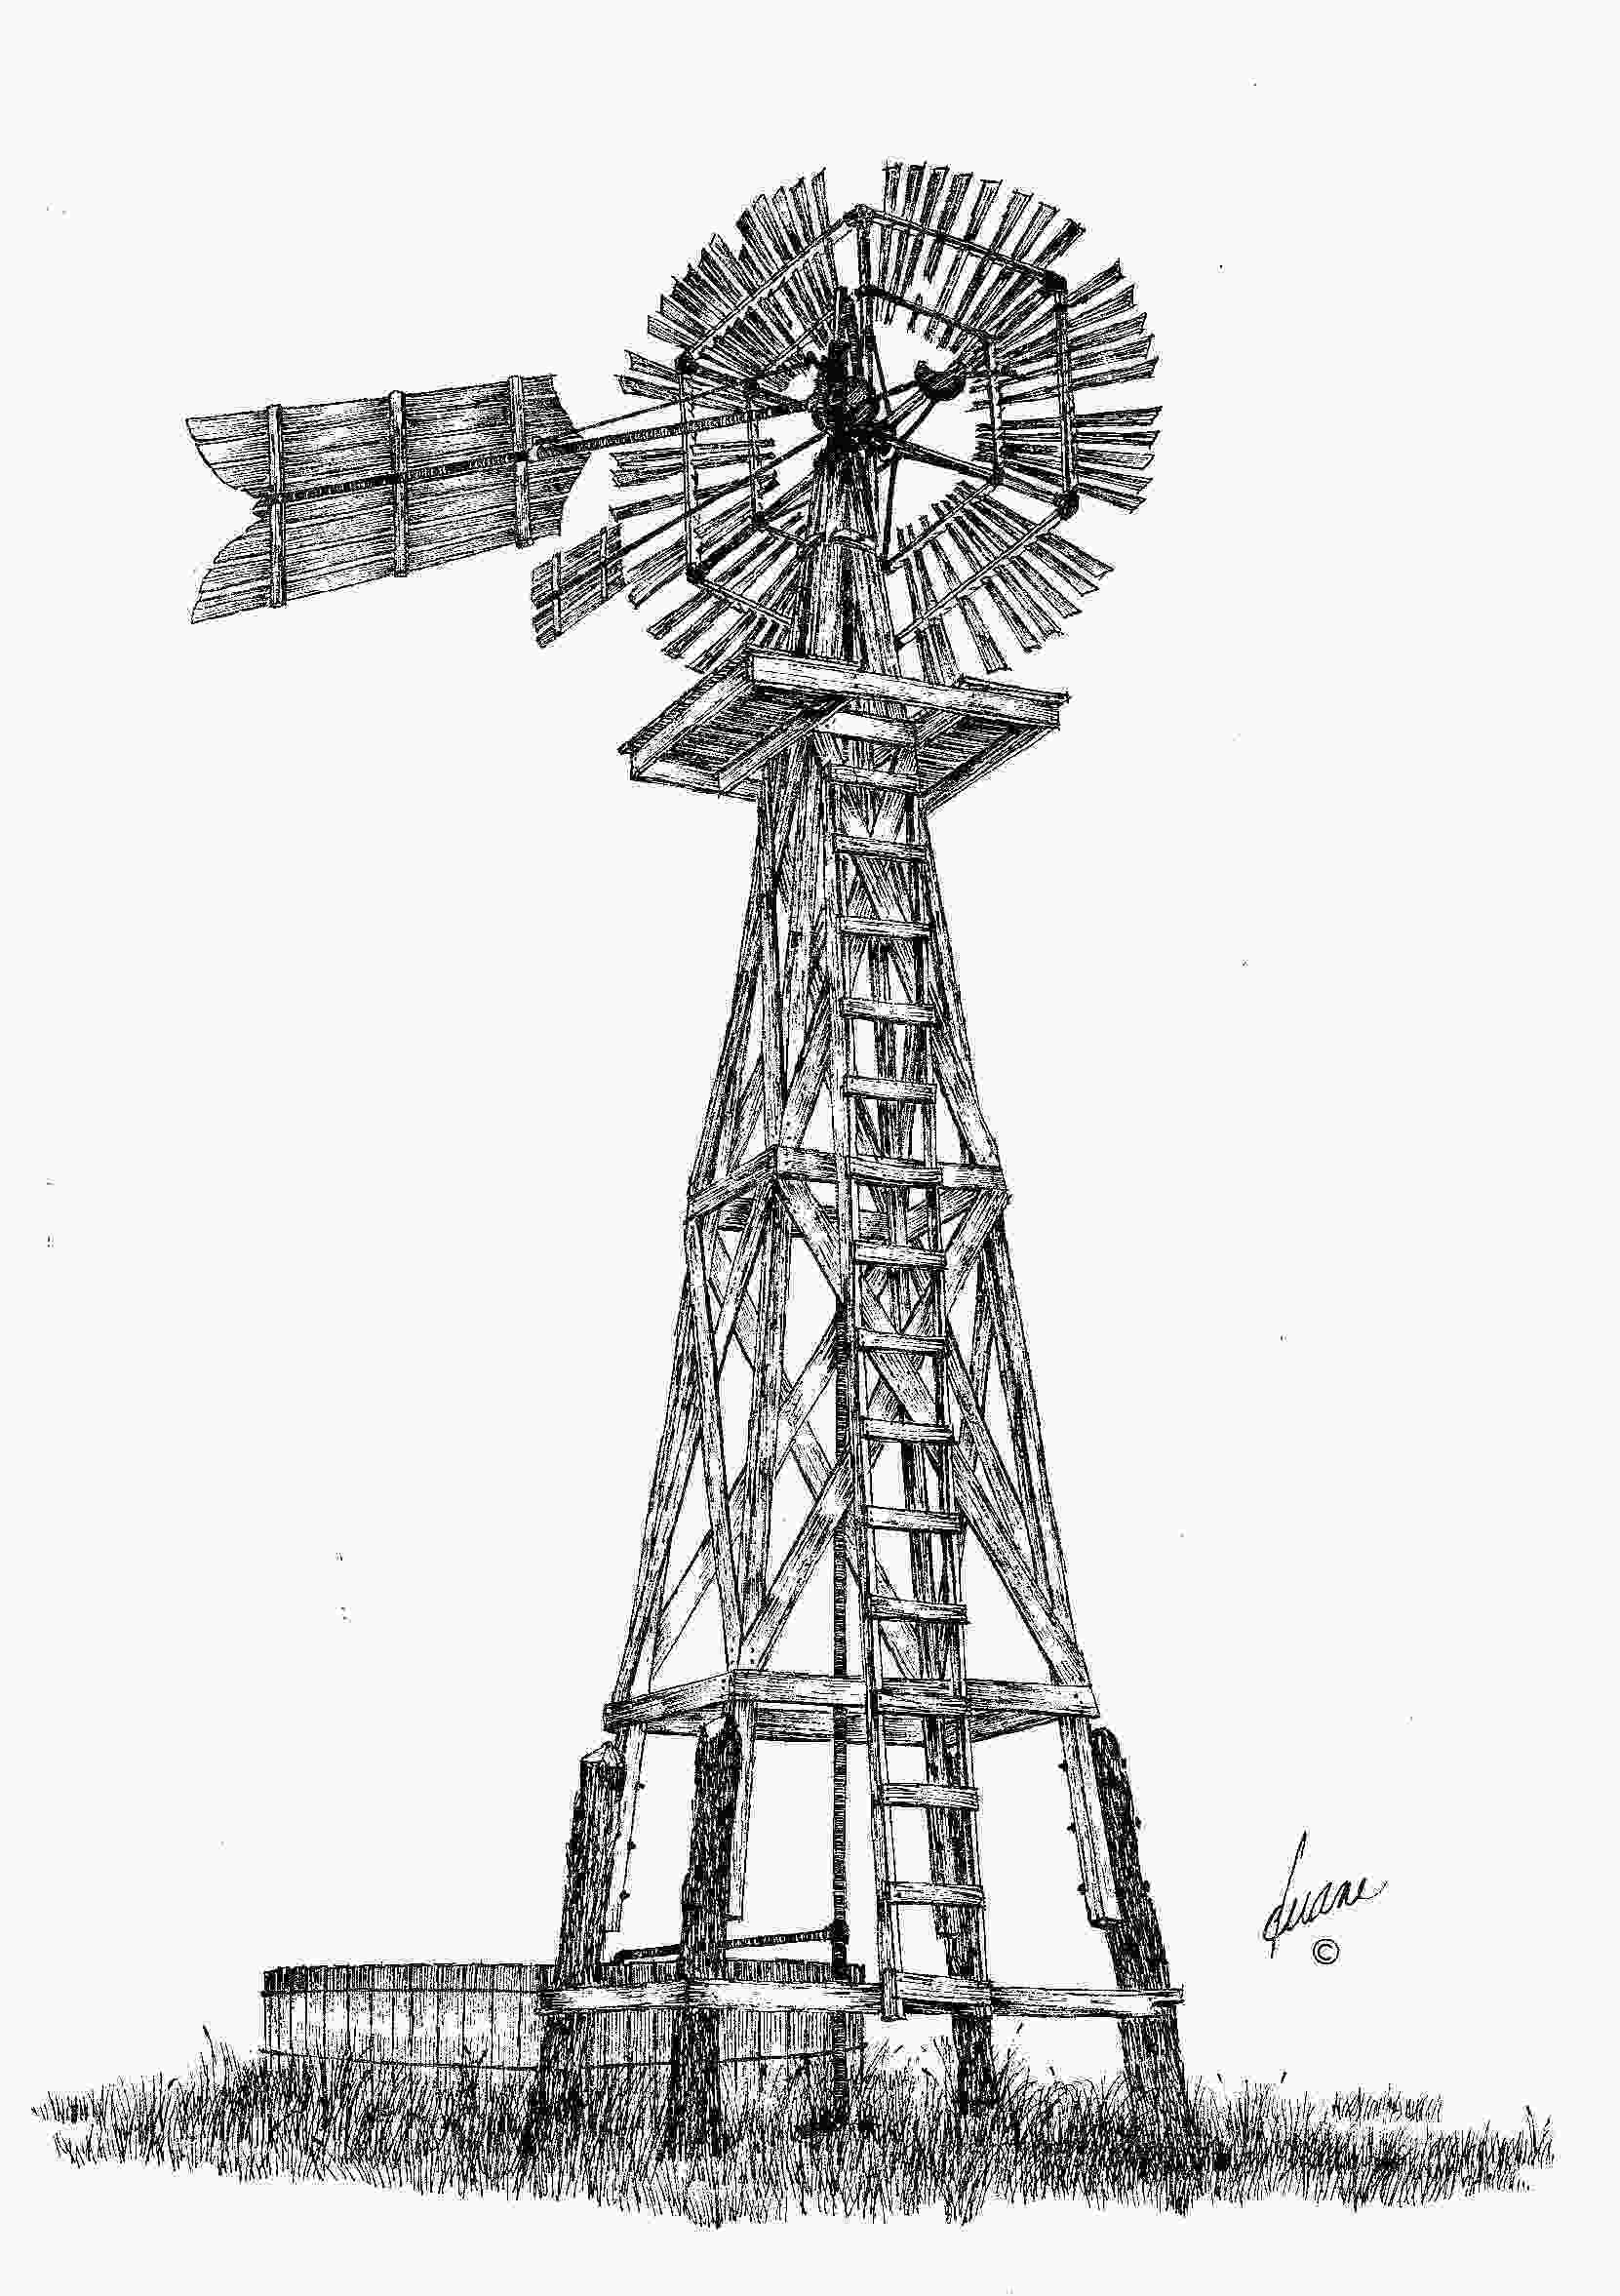 how to draw a farm windmill this is an quoteclipsequot windmill with wooden blades and tail